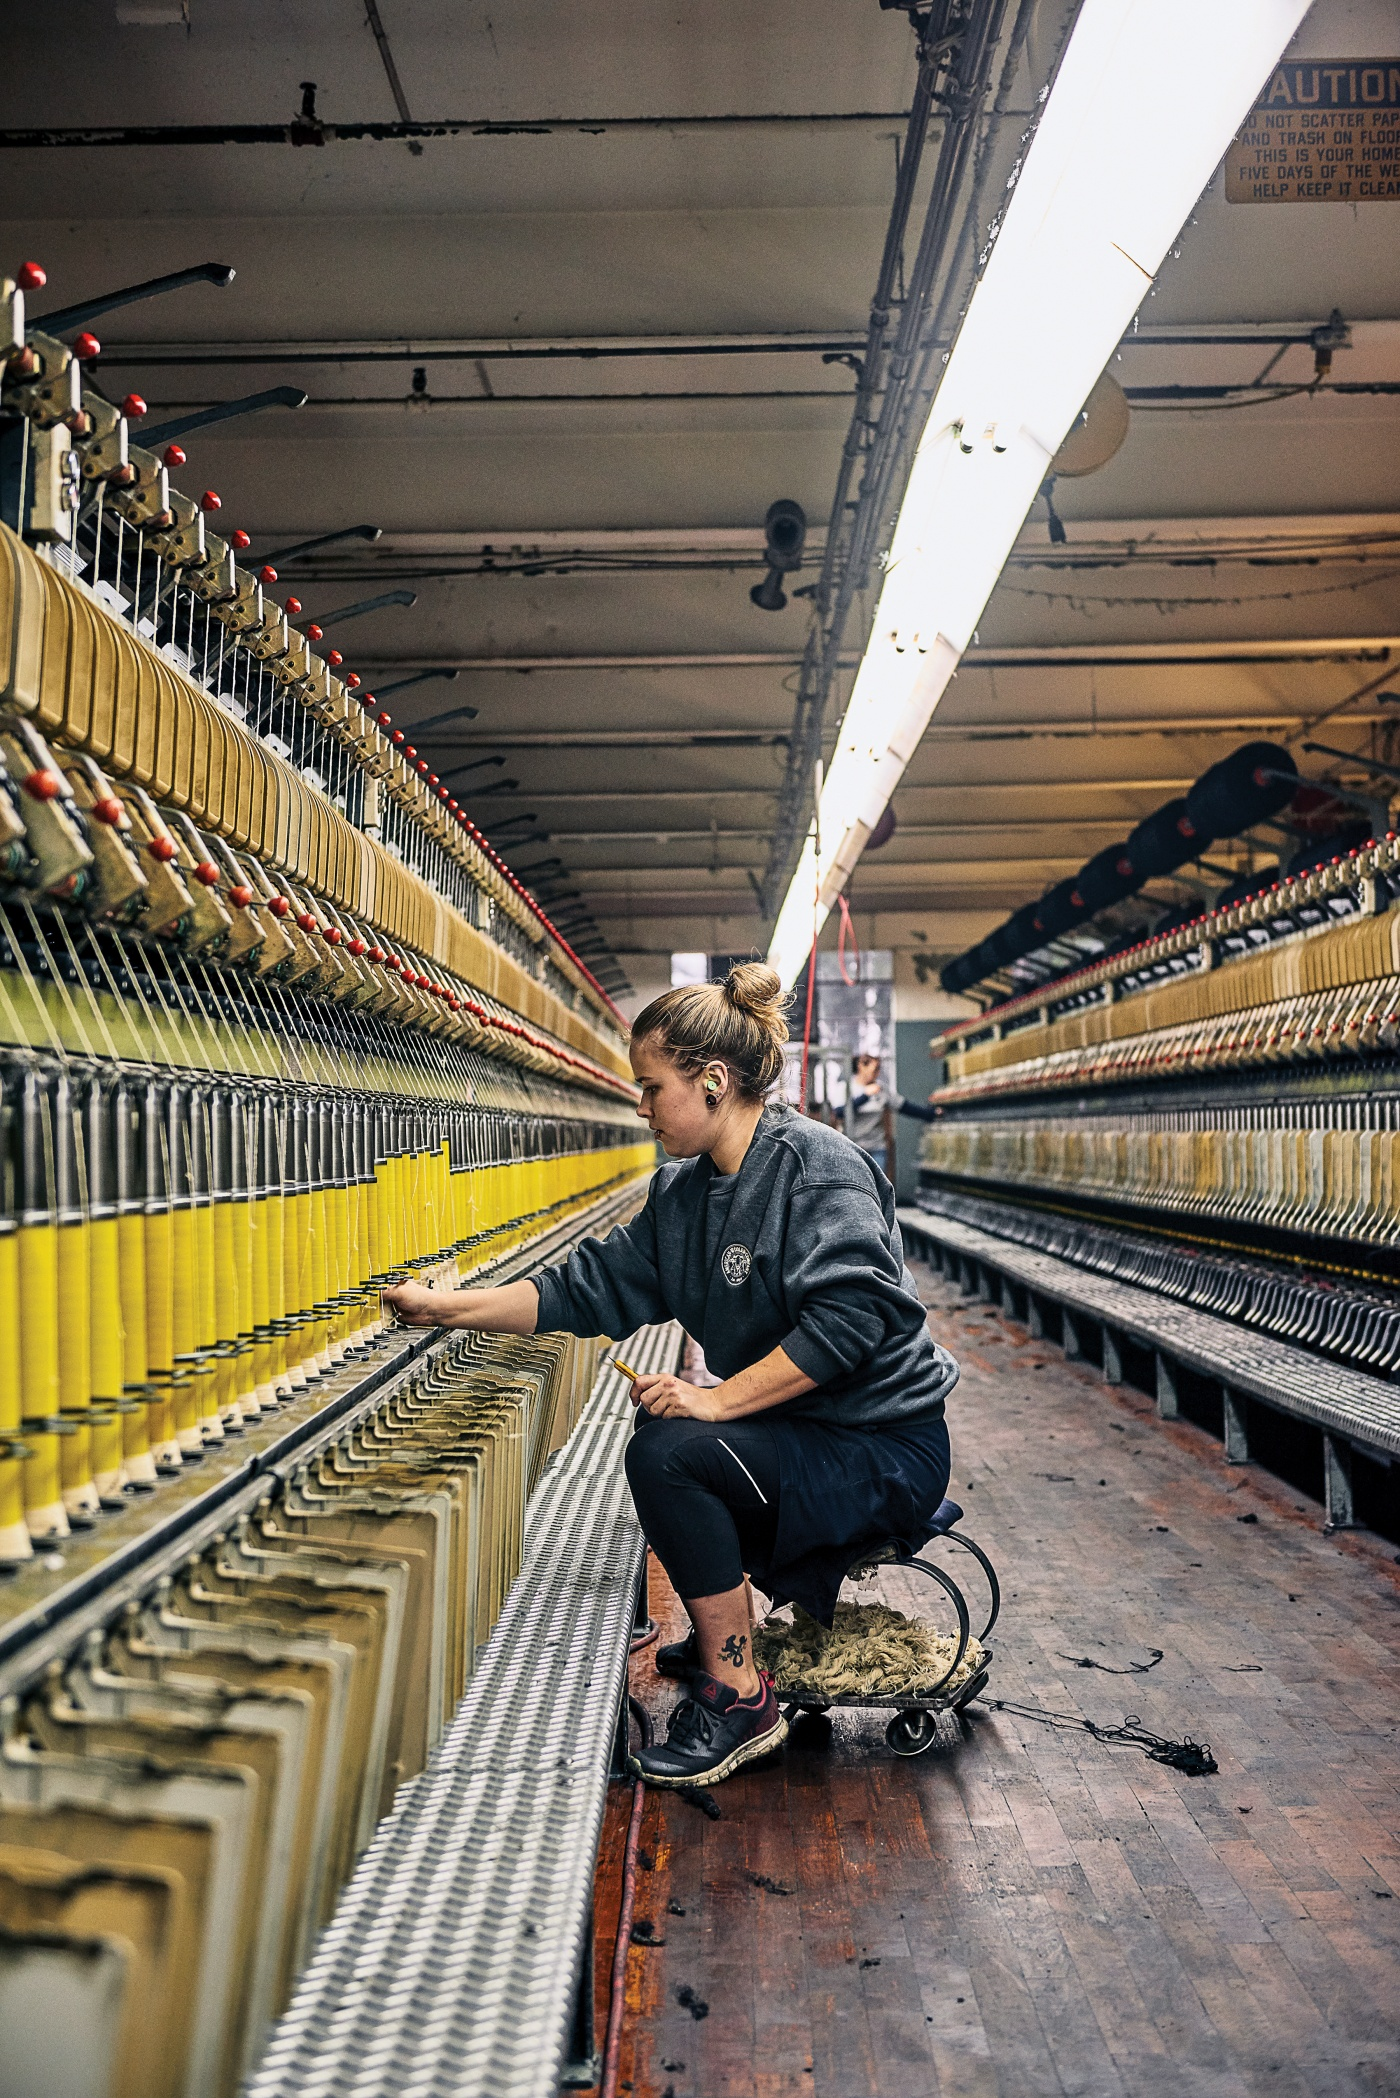 An American Woolen staffer tends to a woolen spinning frame